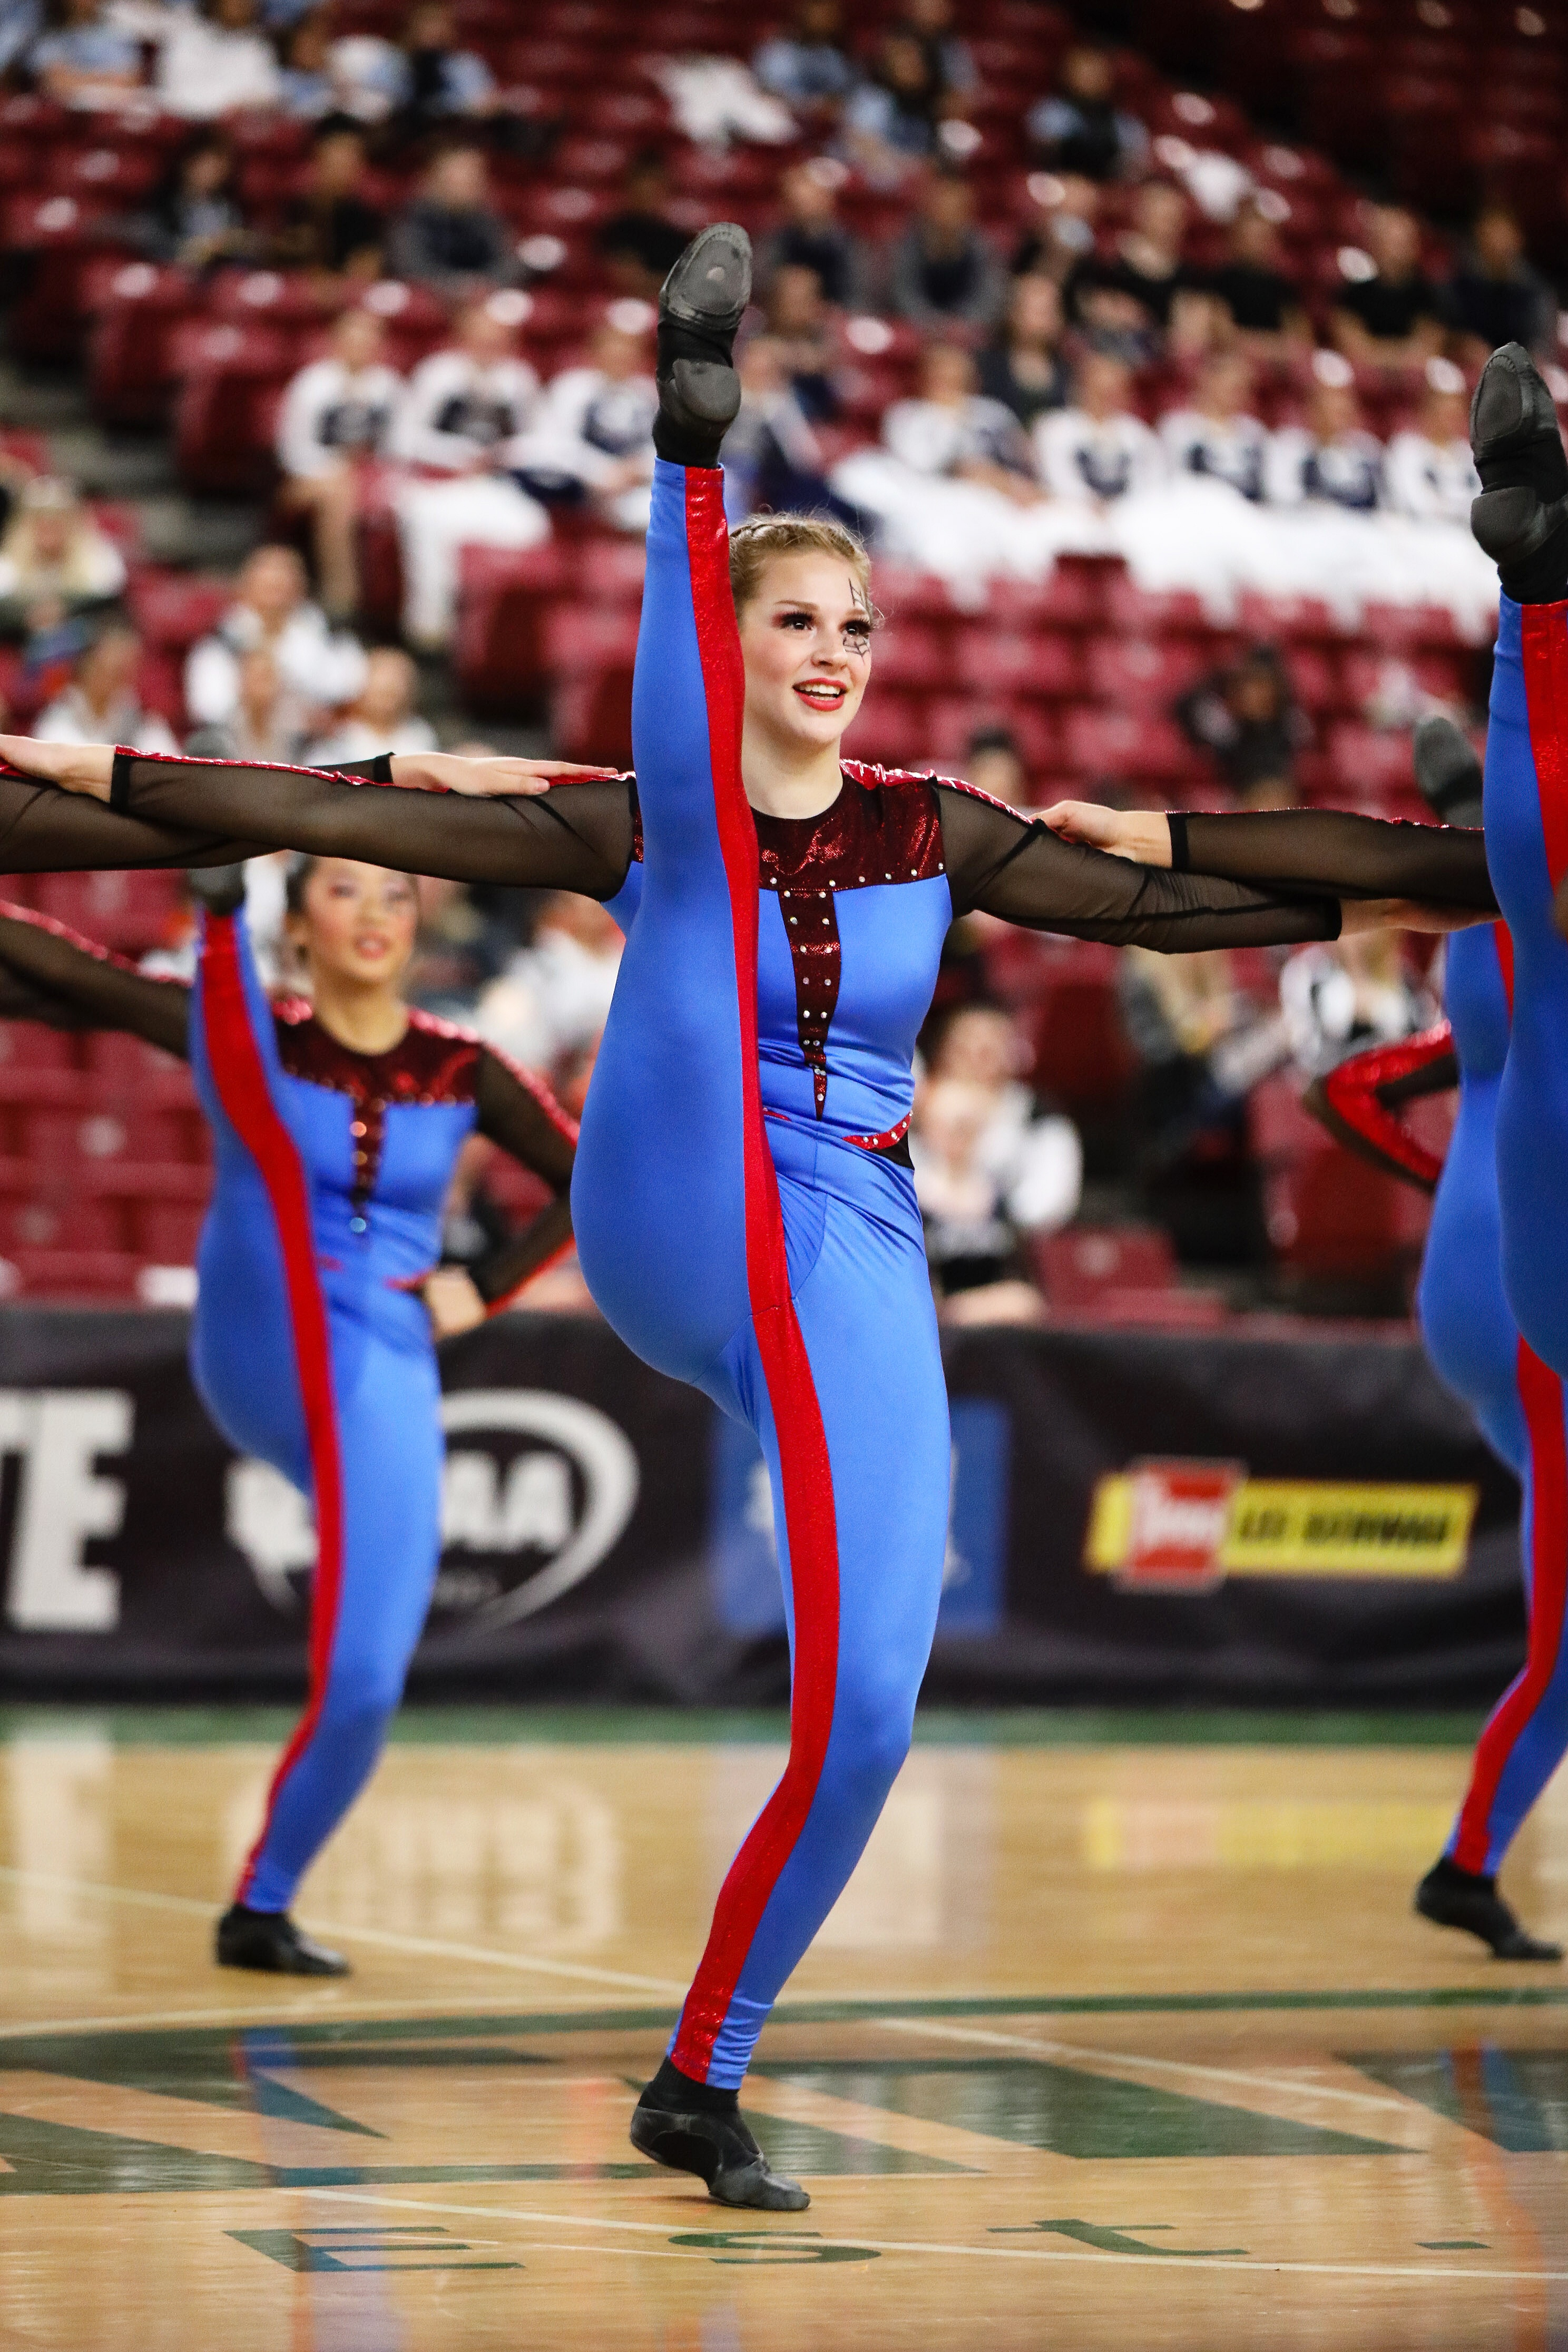 washington dance teams custom dance costumes